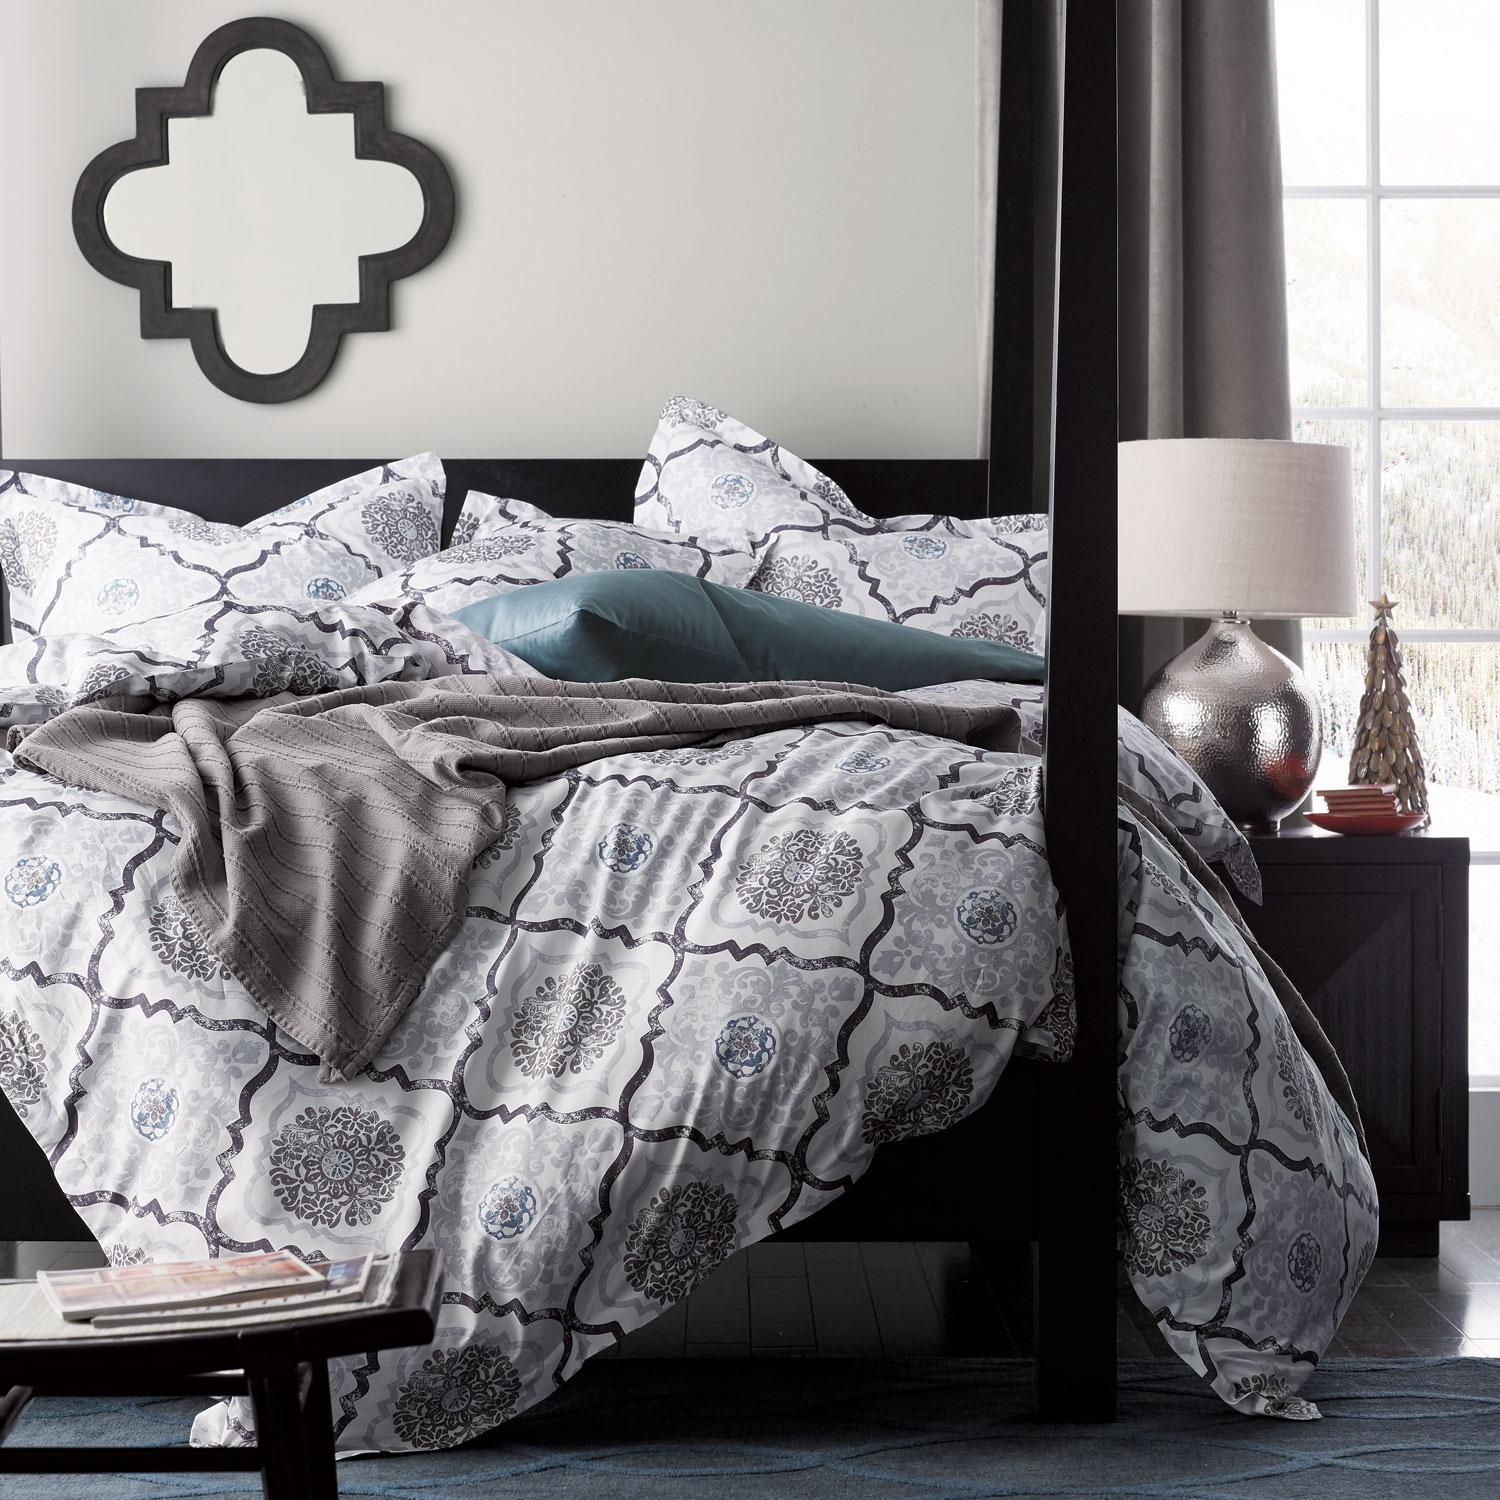 comforter thread count sateen supply us multi heatherspring duvet cover u heather tuileries store s web queen spring